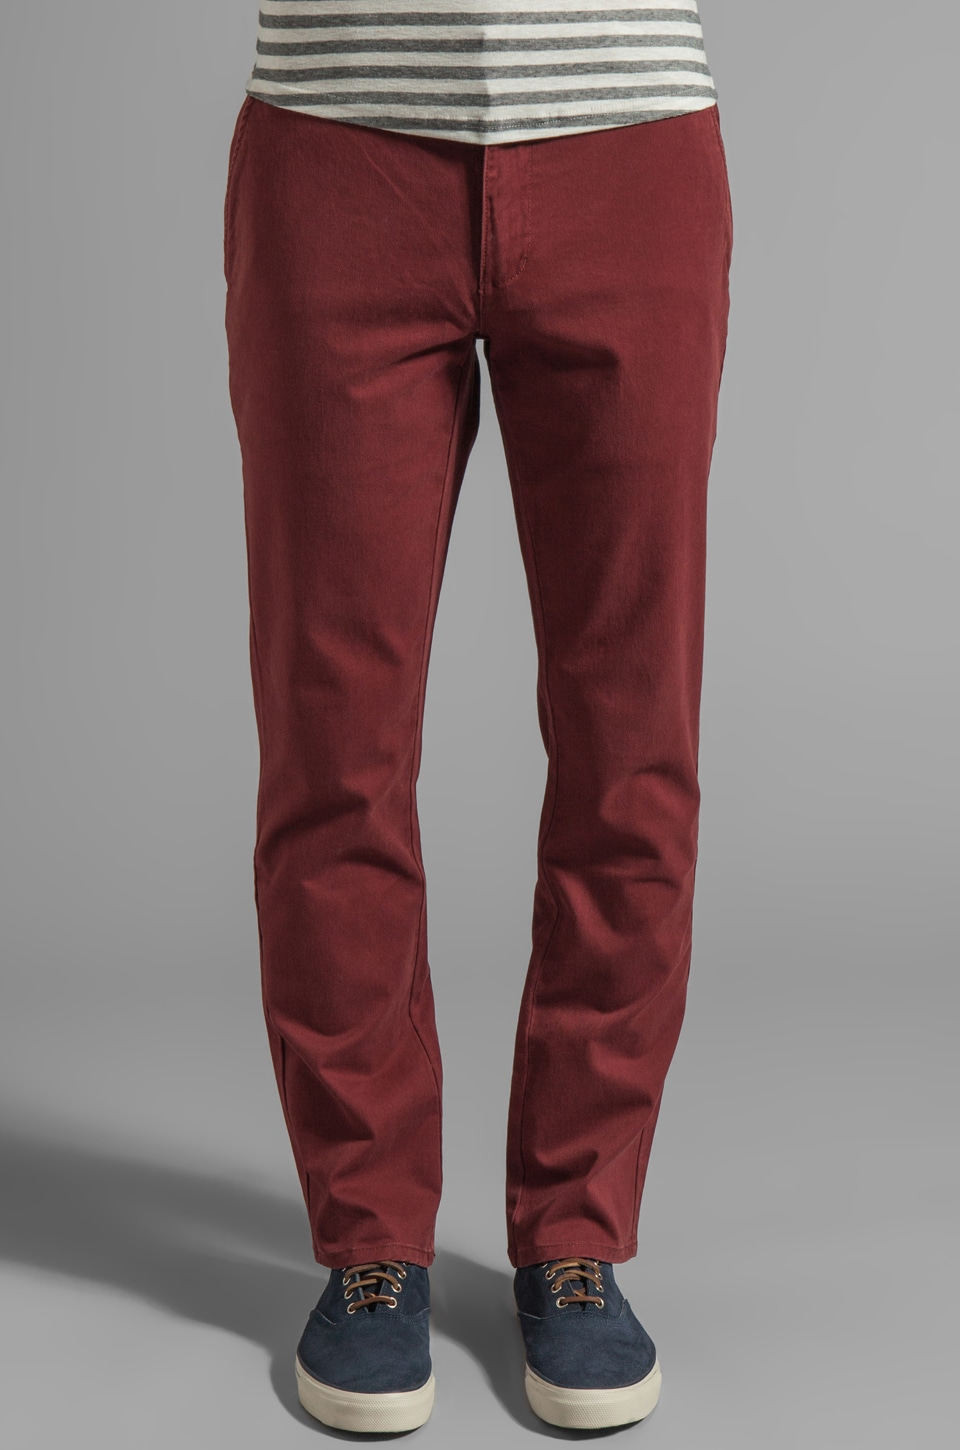 RVCA All Time Chino Pant in Red Earth